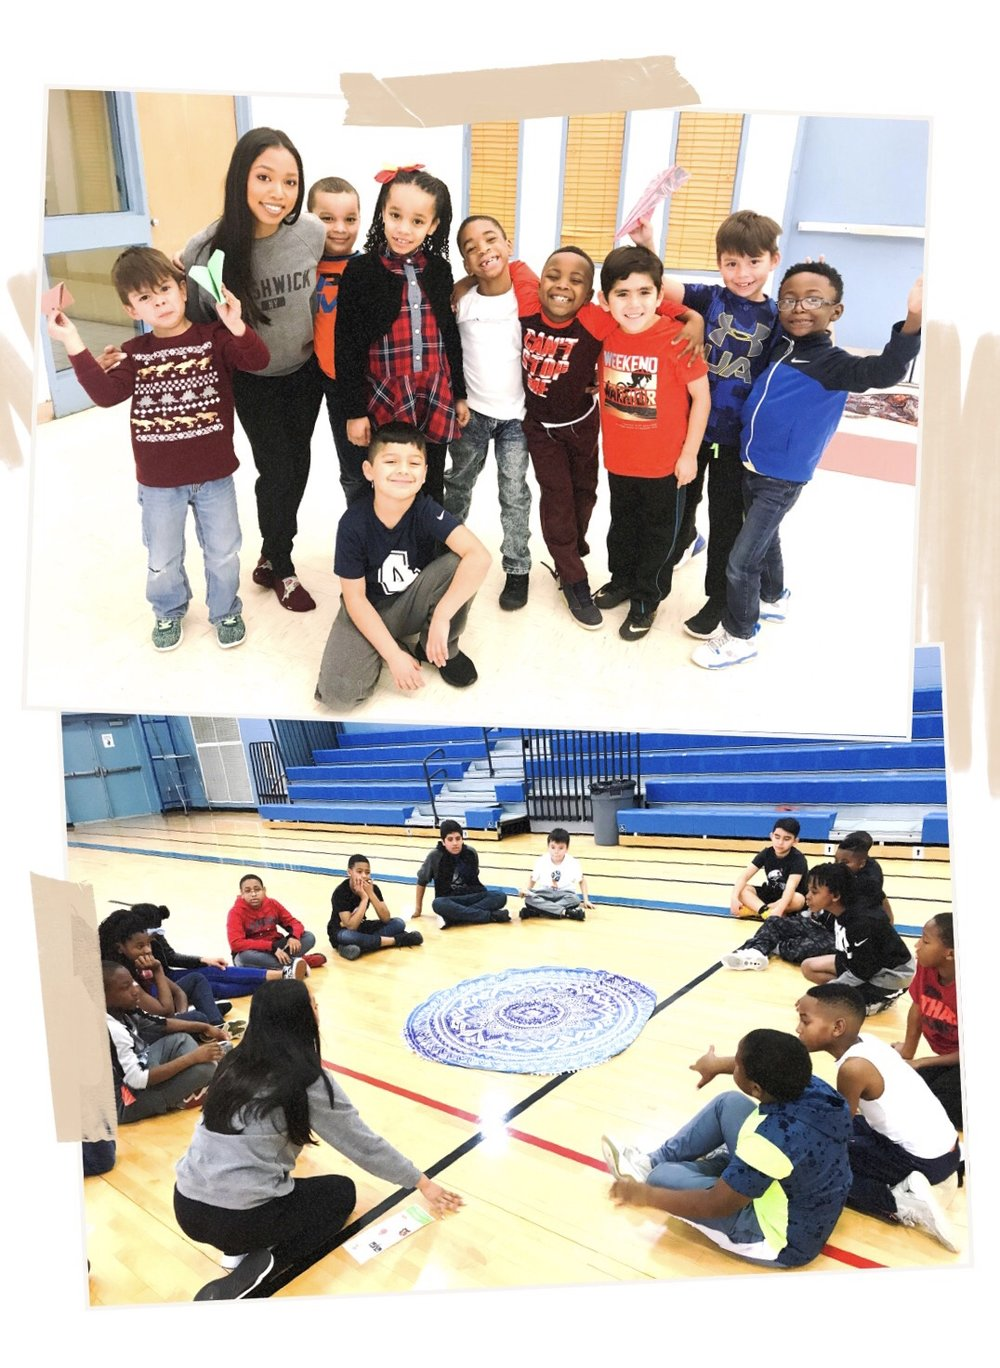 Make it about Science and Do it in Groups - When kids get together, they want to have fun with their peers. So to capture their attention, I make my lesson science-based. We talk about the brain and what stress does to the body! I have an info sheet that I use to help them follow along and connect the dots between mental and physical wellness. Yoga is that shortcut that kills two birds with one stone. So I help them learn brain terms like:hippocampusstressparasympathetic nervous systemsympathetic nervous systemamygdalaThey become engaged by the science behind it and want to try it for themselves! I use science and neuroscience to build my case around the benefits and it has seemed to be a good way to introduce this ancient practice to young people. If you would like a copy of my info sheet, feel free to comment below and I can send you one !